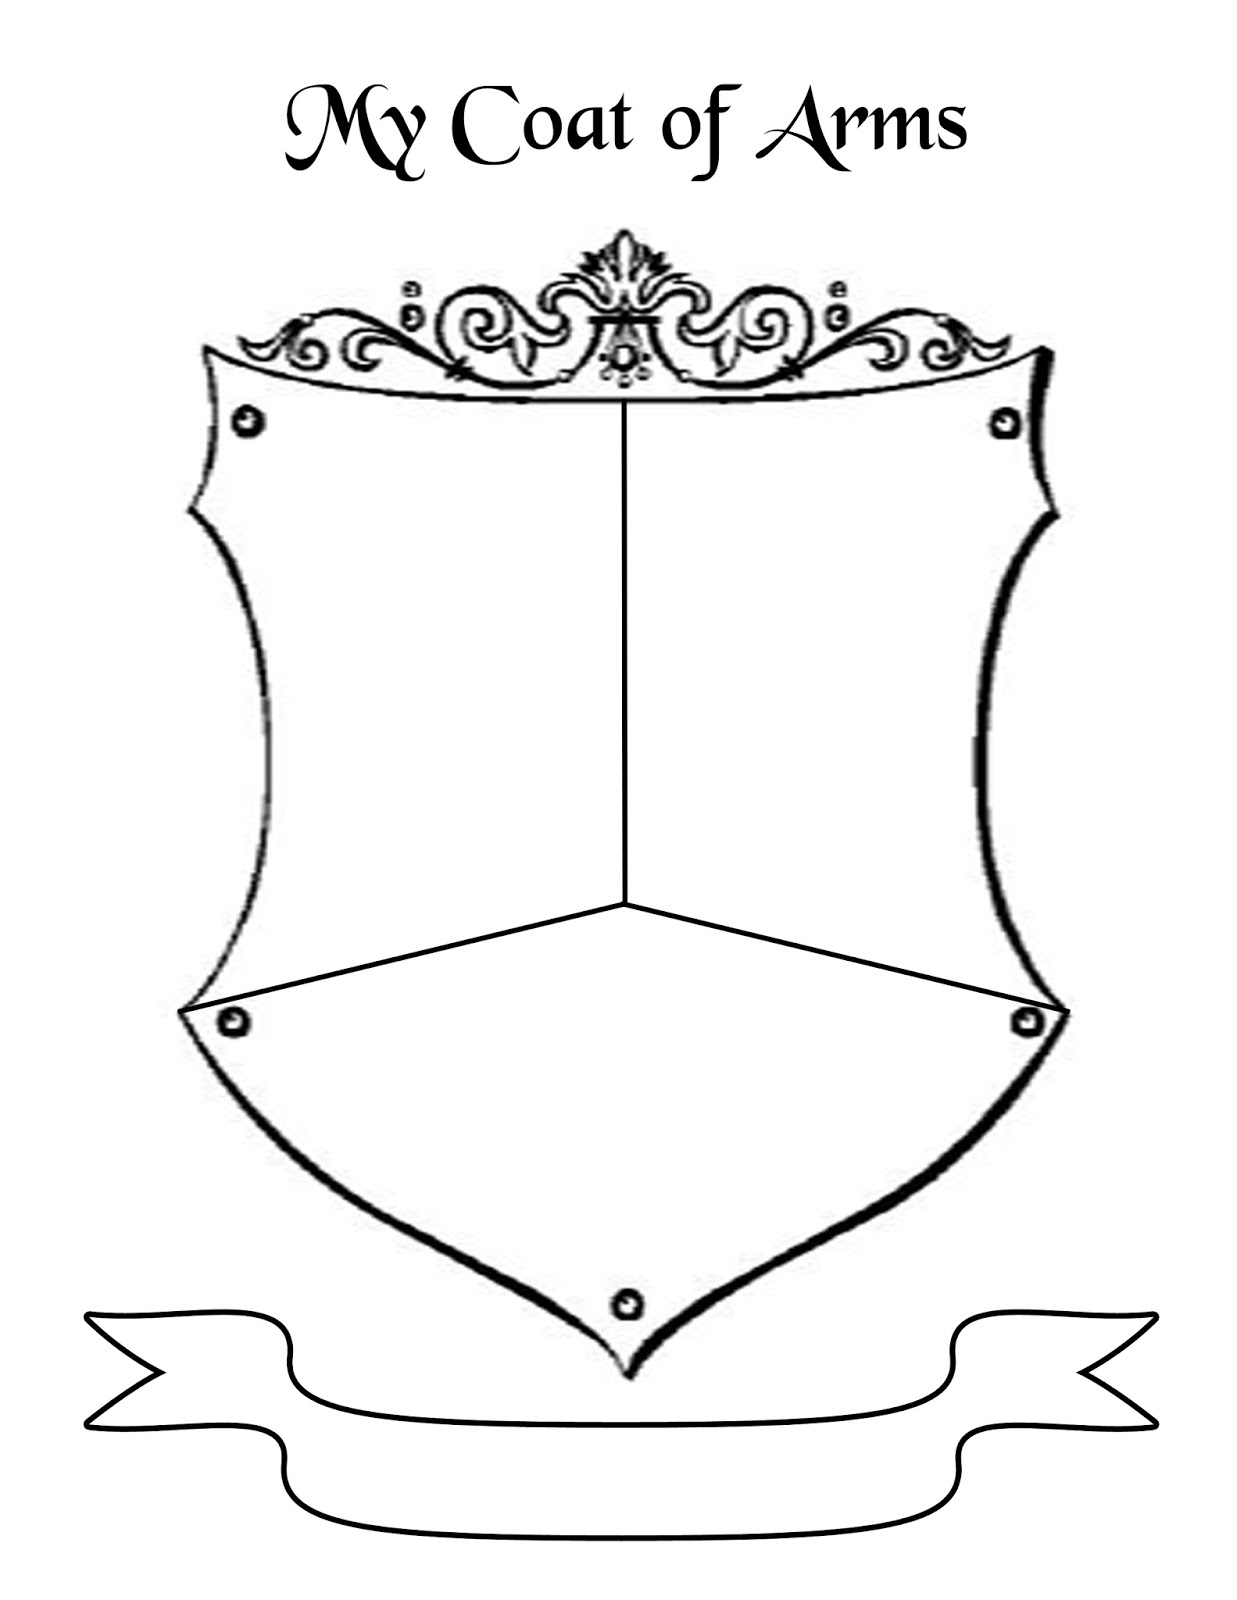 Coat Of Arms Template - Cliparts.co | Printable Coat Of Arms Worksheet